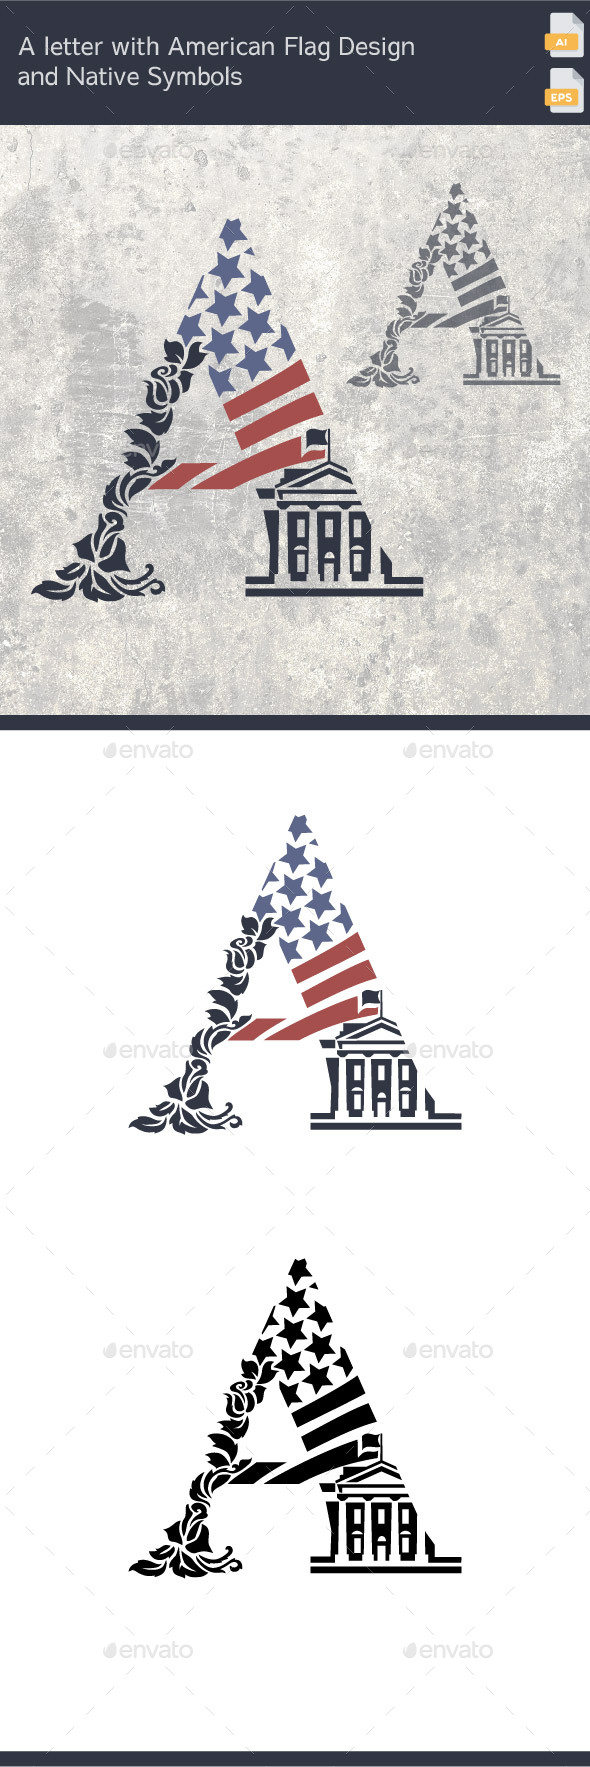 The A Letter with American Flag Design and Native Symbols